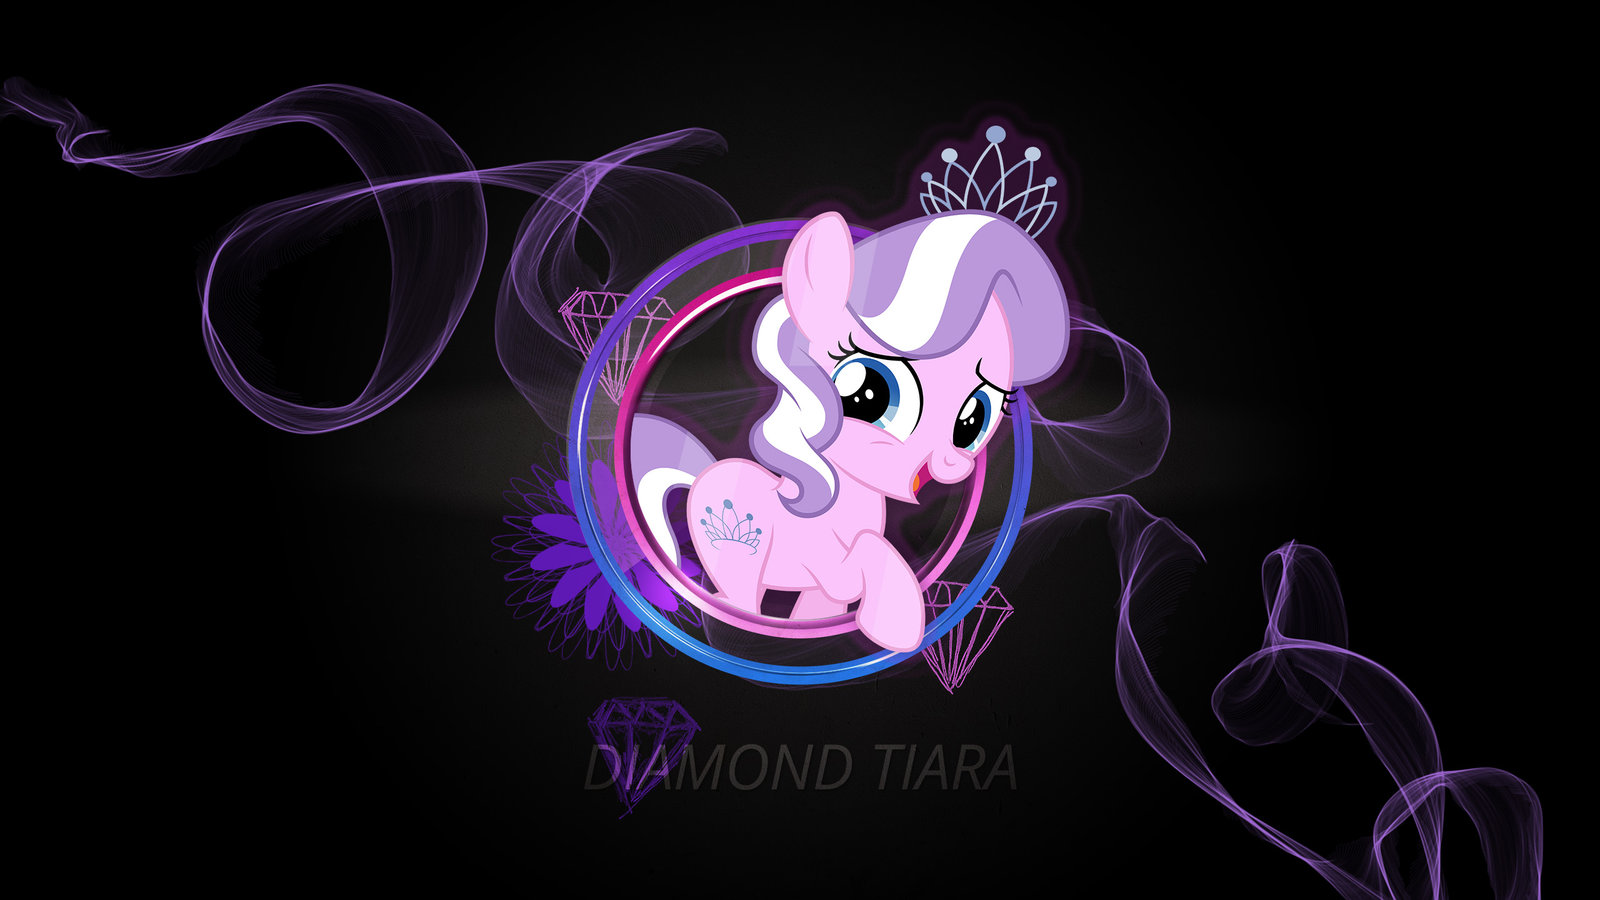 Diamond clipart neon Wallpaper Tiara Neon by on